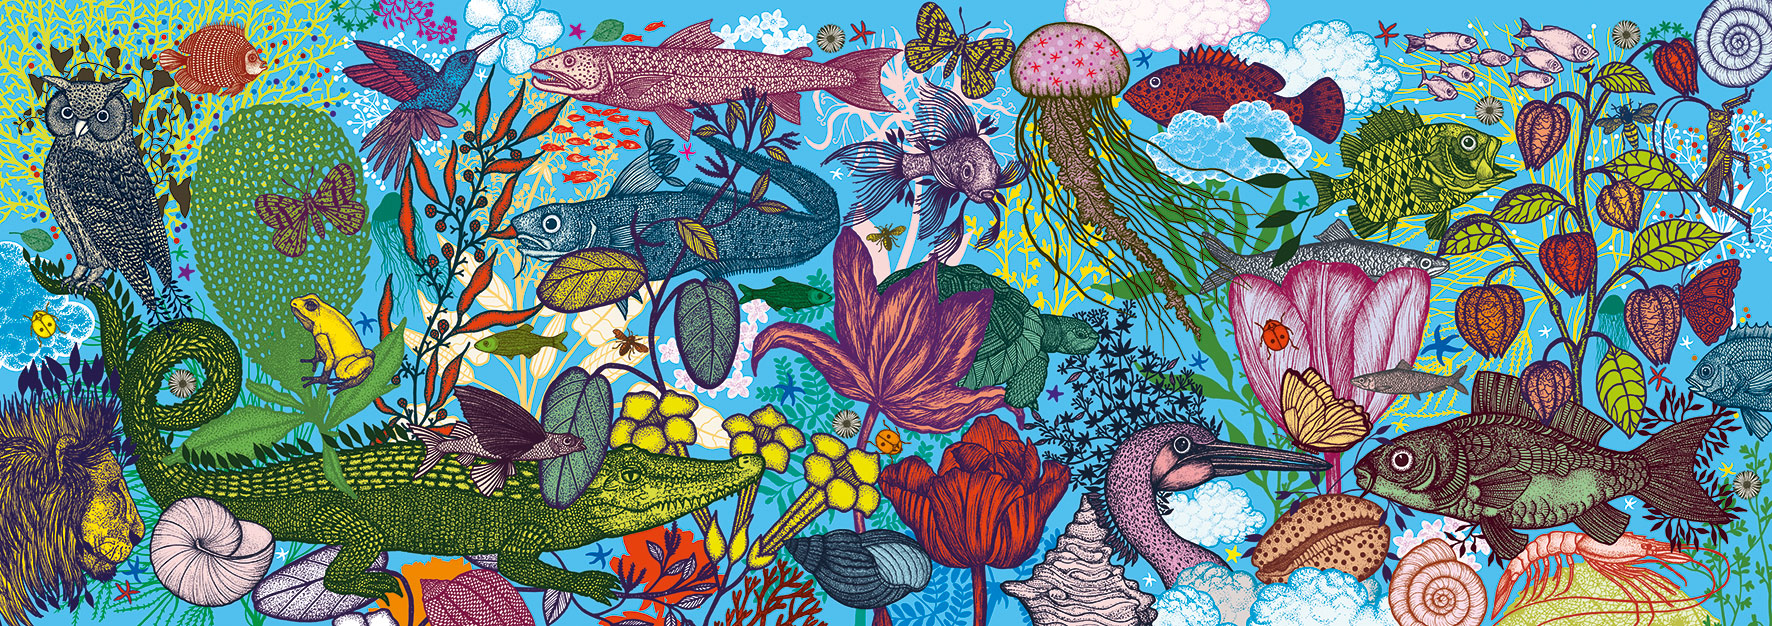 Land and Sea Under The Sea Jigsaw Puzzle